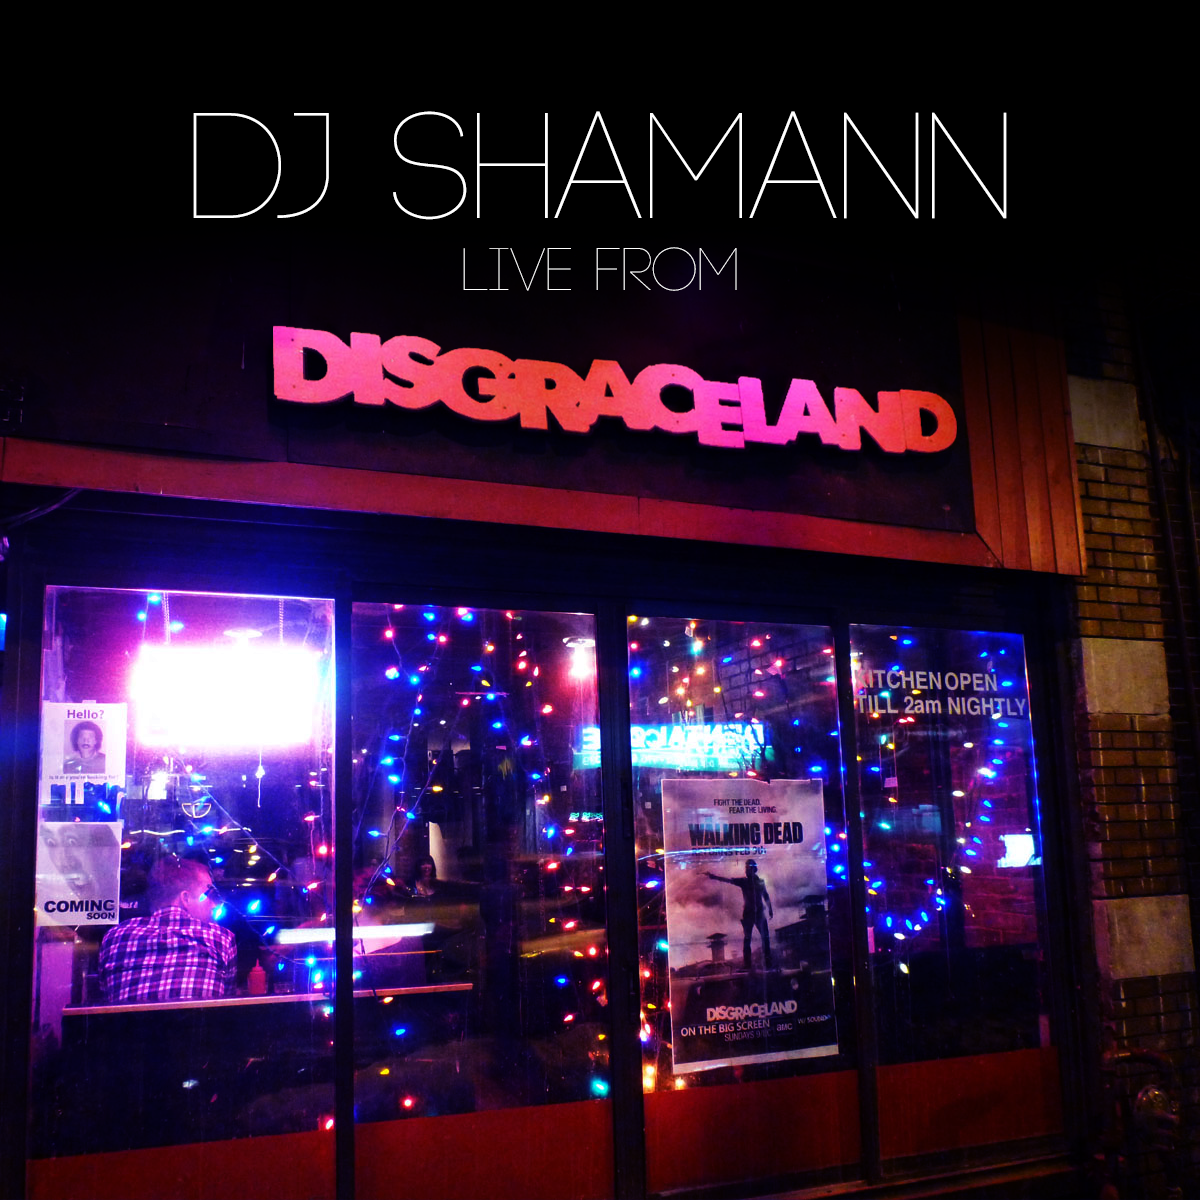 Dj Shamann - Live From DisGraceland (Quick set on Bloor W)